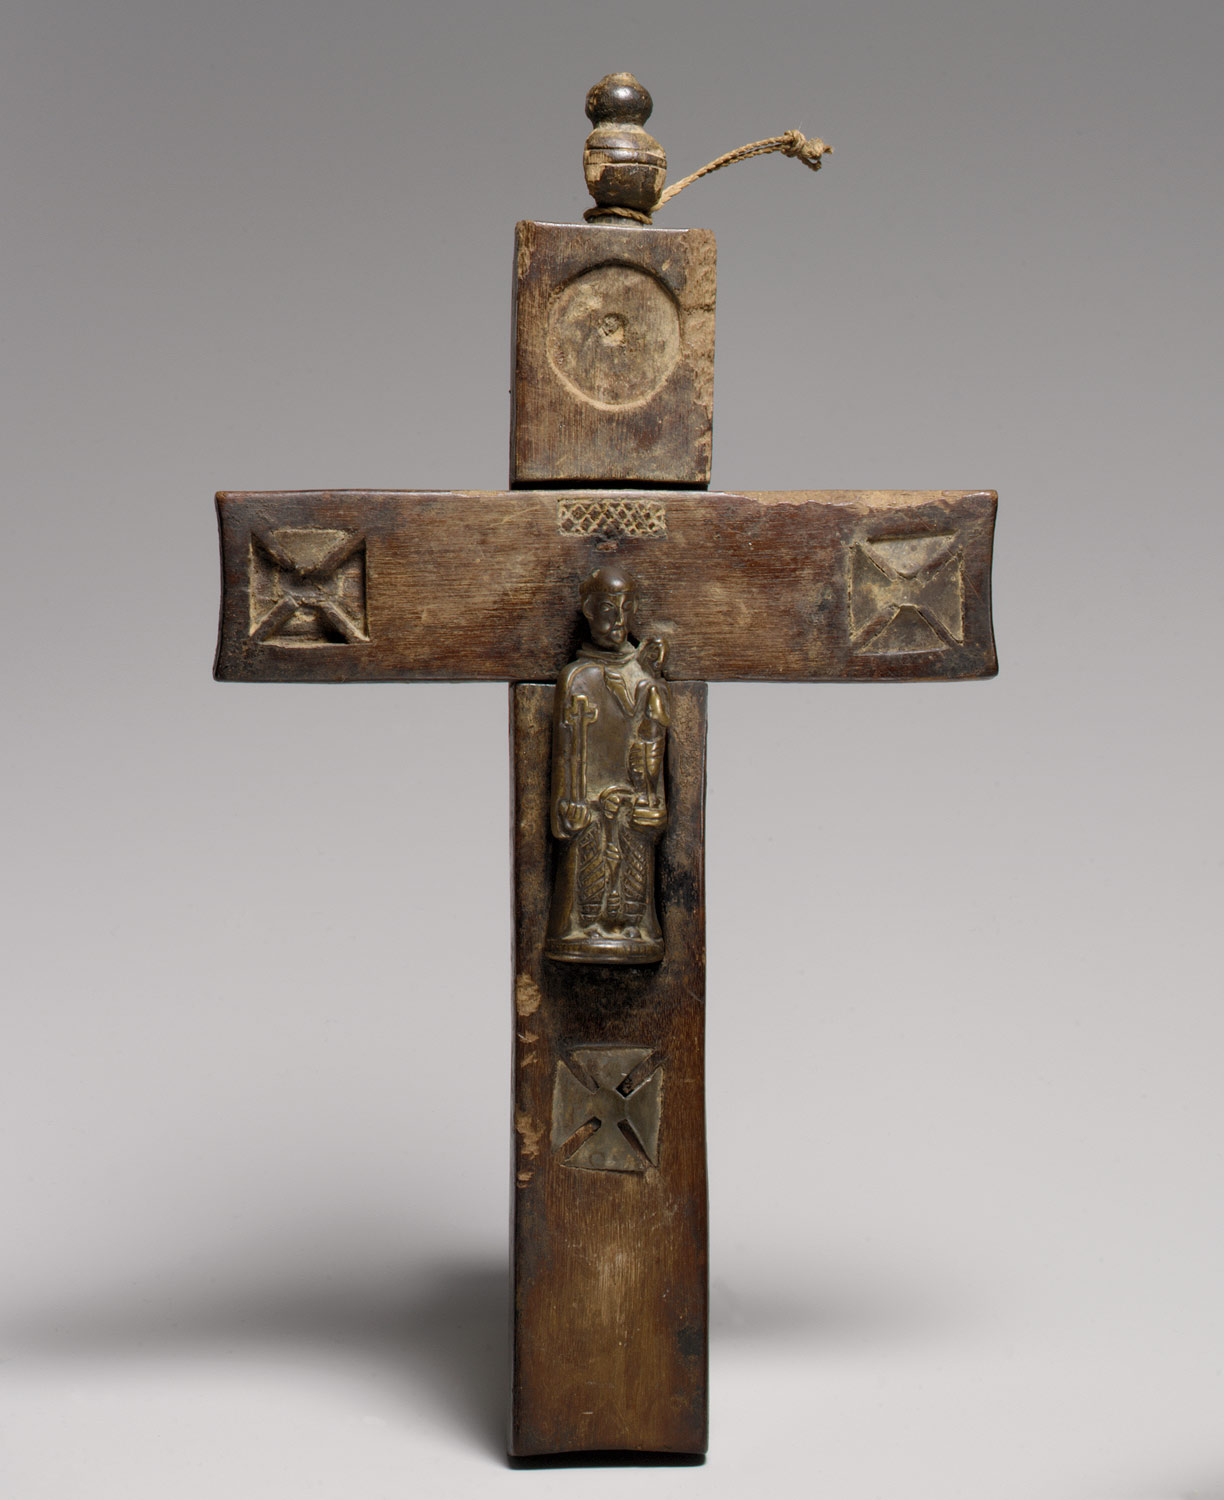 essay on christianity ancient pagan and modern christian symbolism  african christianity in kongo essay heilbrunn timeline of art crucifix crucifix acircmiddot crucifix crucifix acircmiddot crucifix